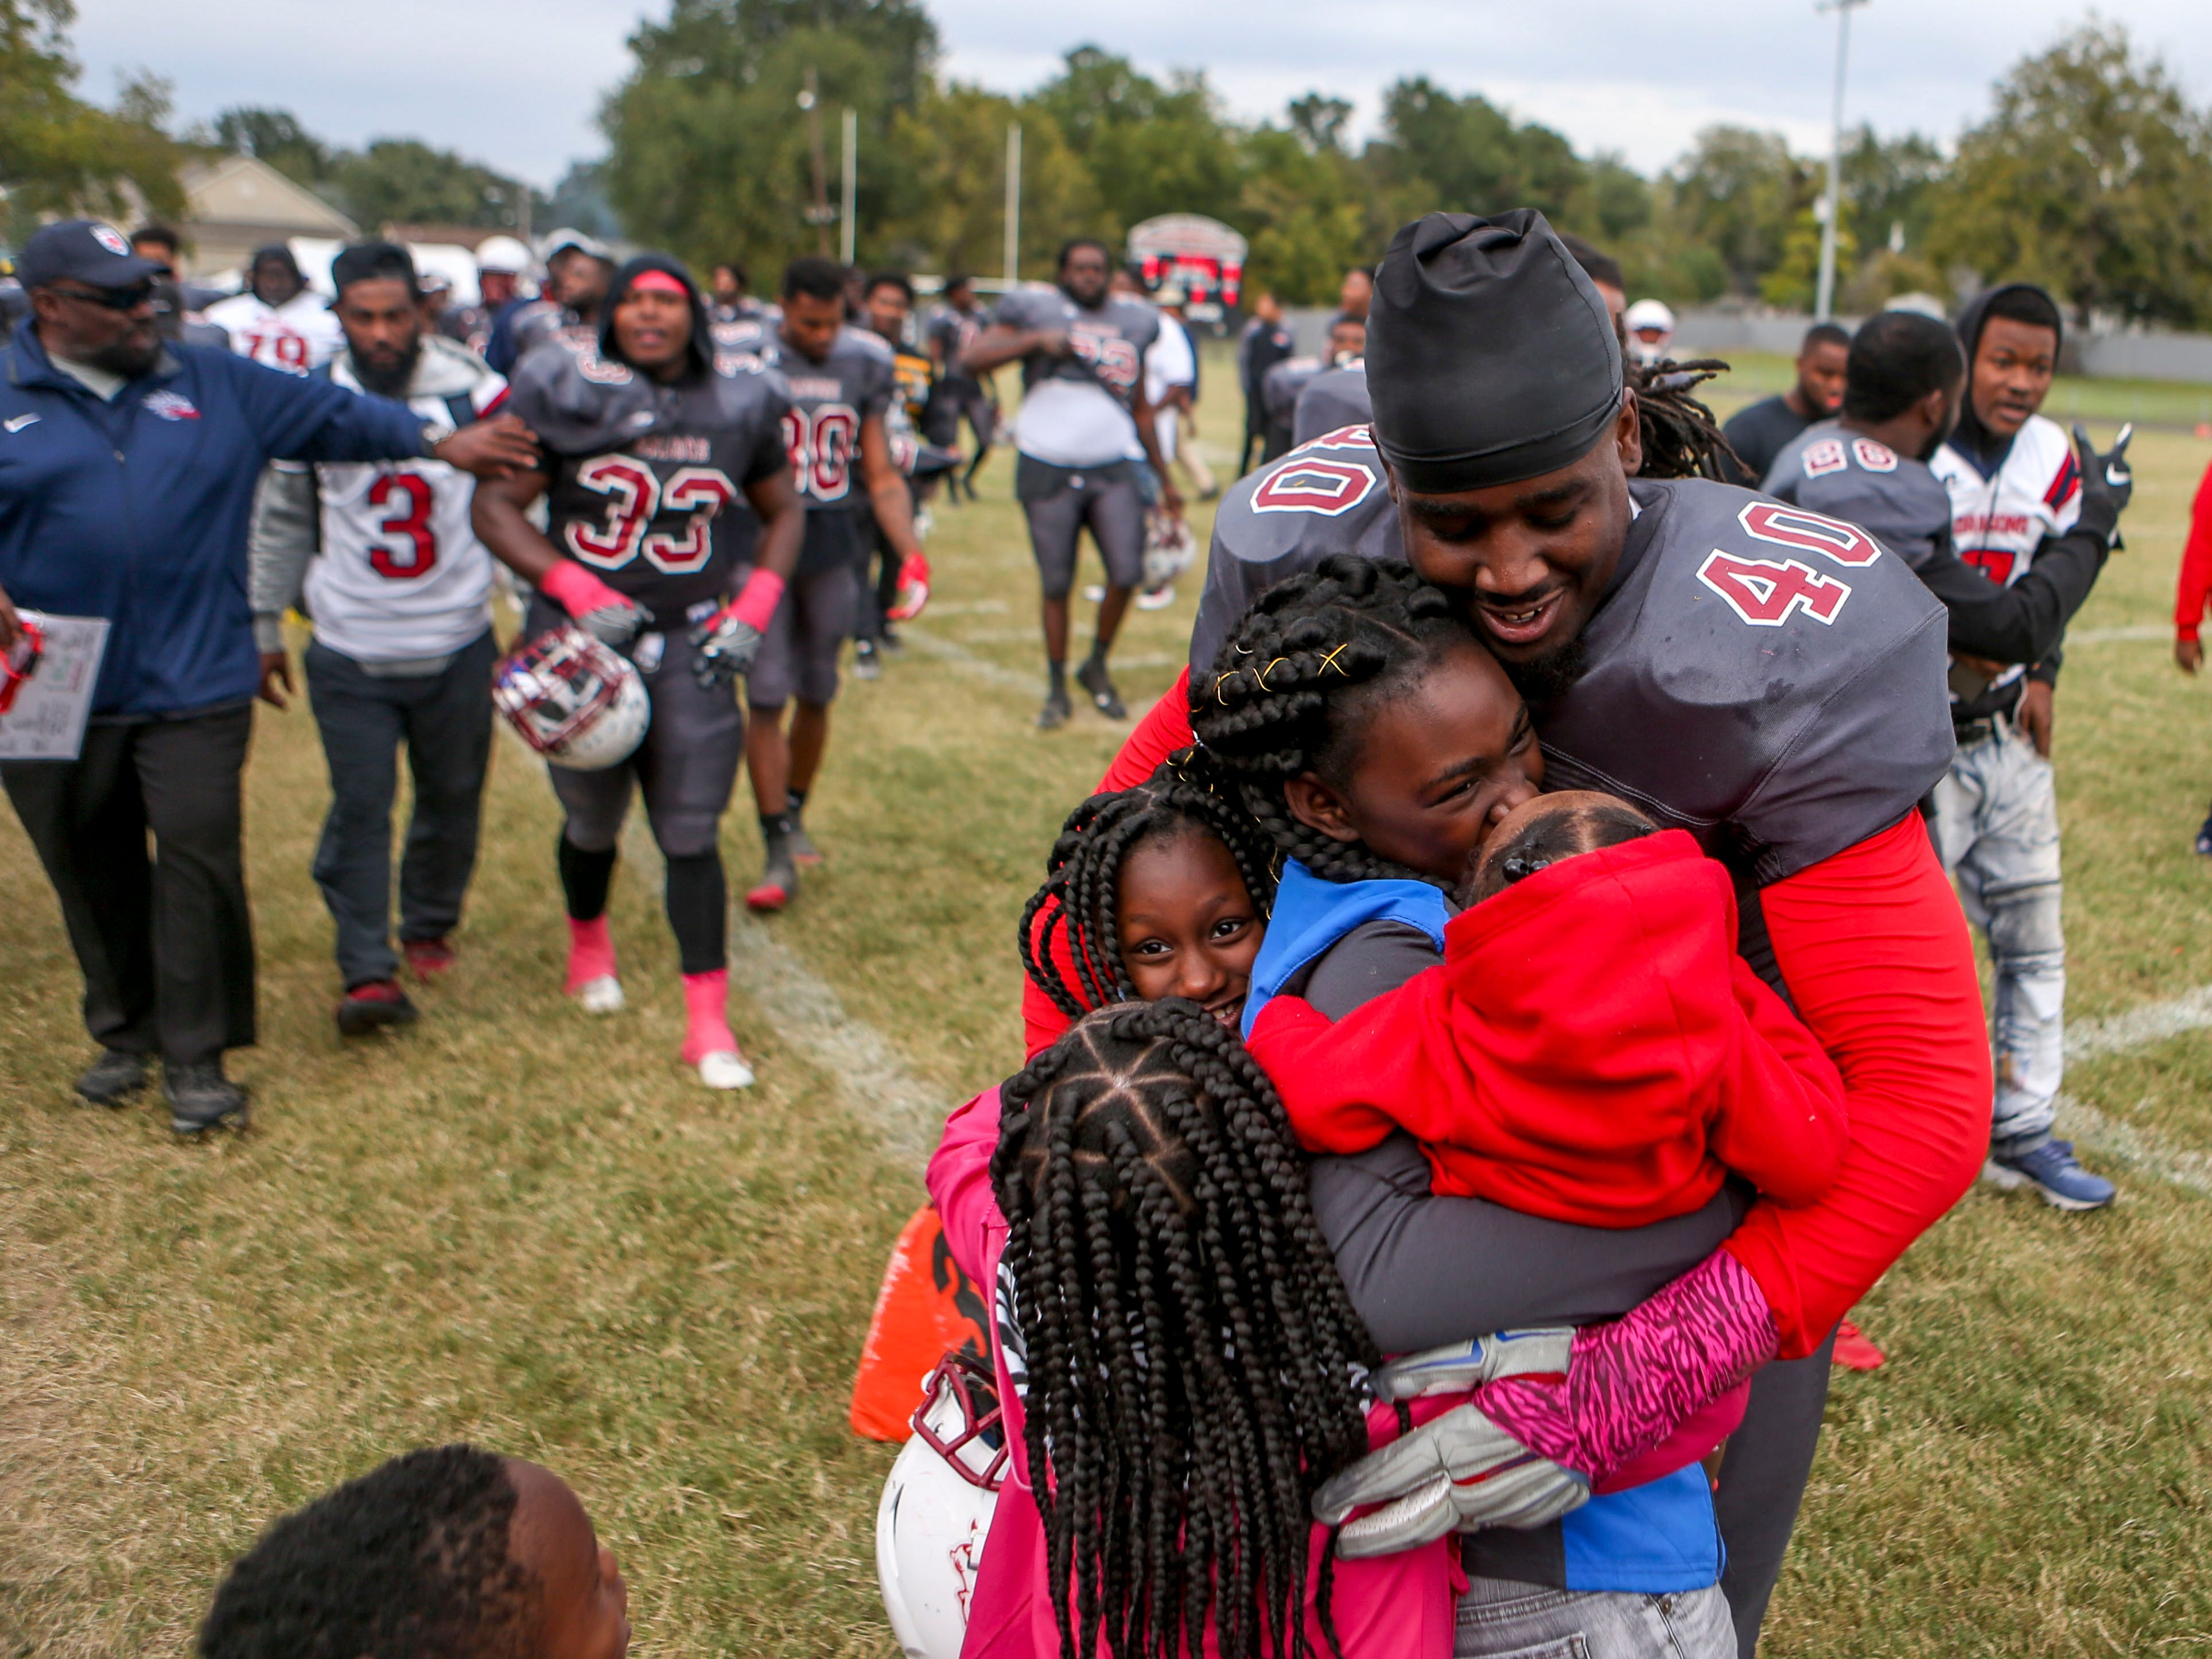 Johnny Russell Jr (40) embraces his kids and family coming off the field after Lane College won their homecoming game at T.R. White Sportsplex in Jackson, Tenn., on Saturday, Oct. 13, 2018.